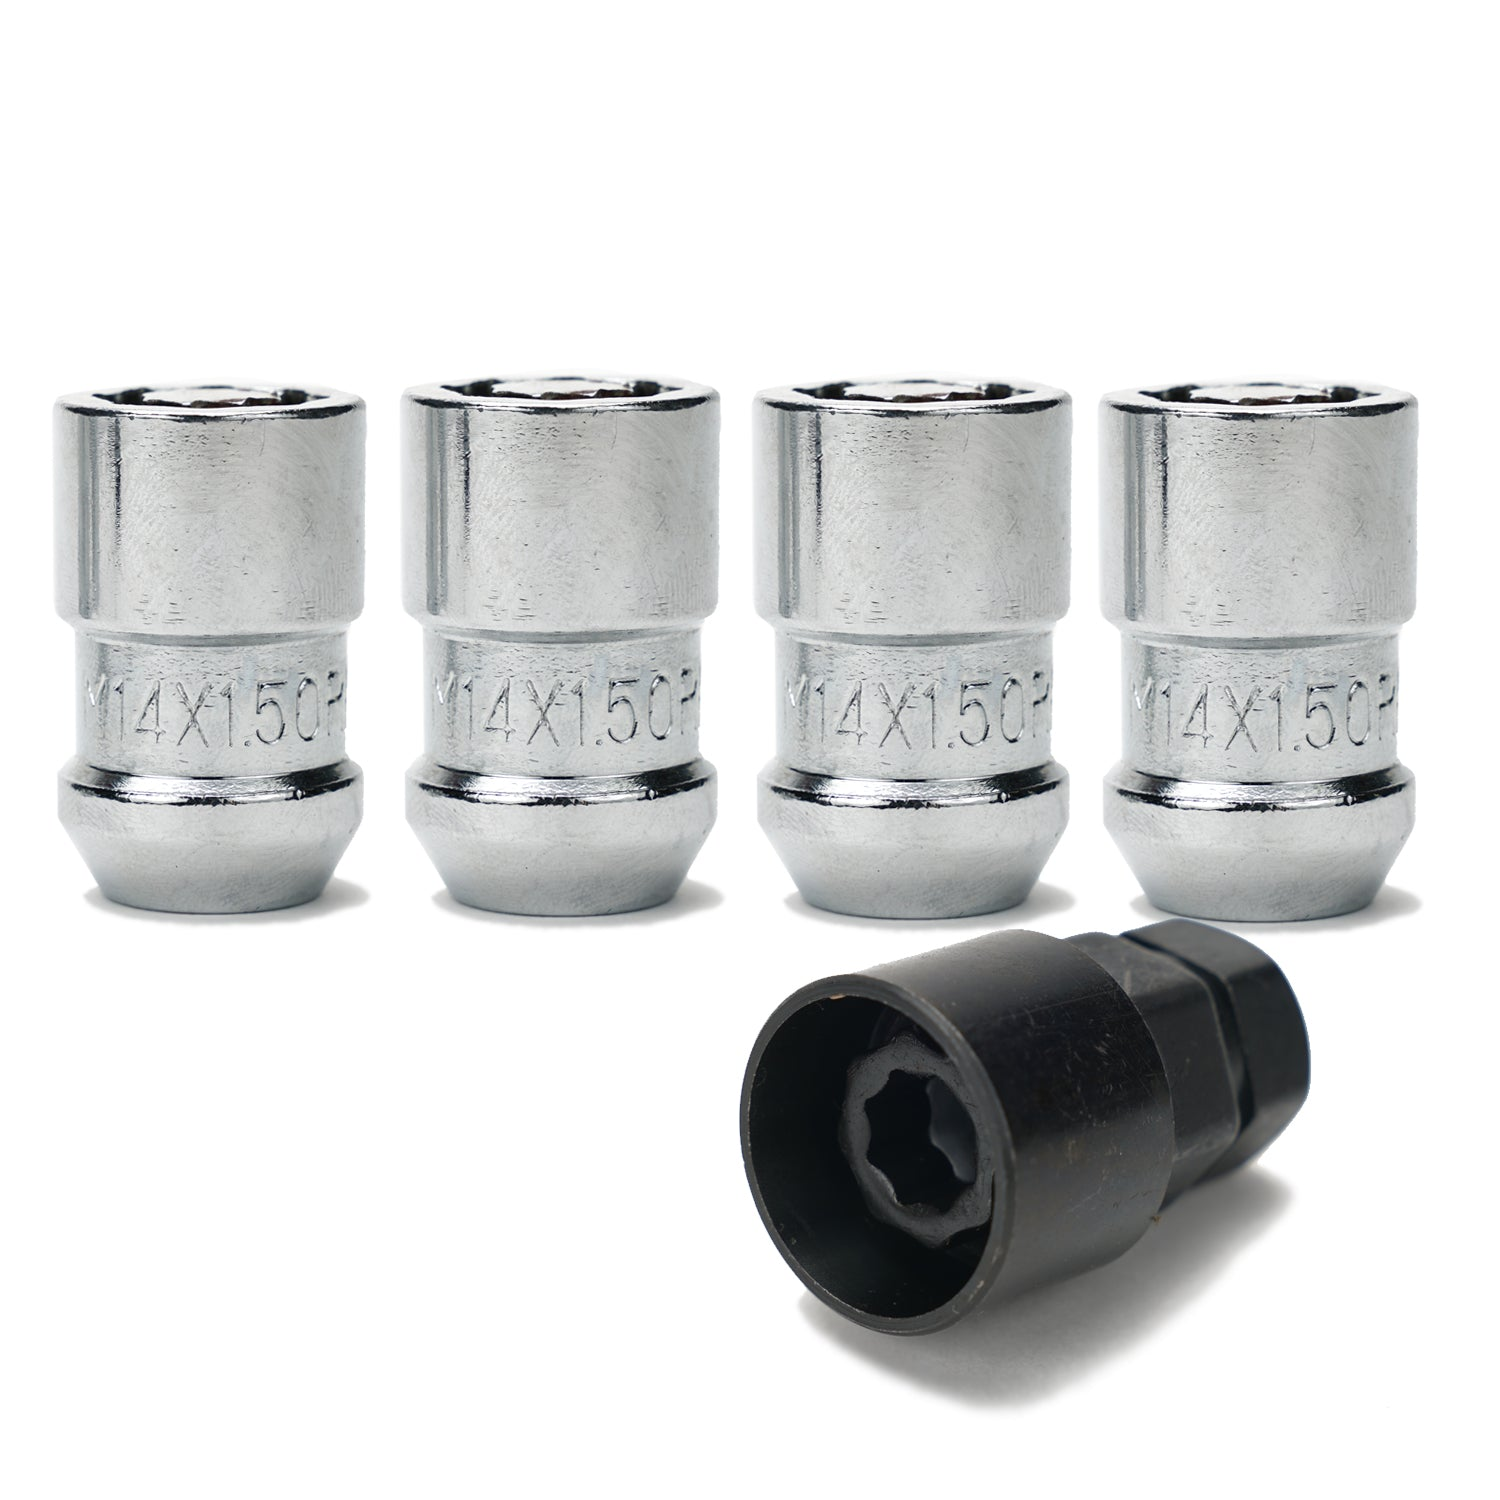 Chevy Colorado | ZR2 Wheel Lug Nut Locks M14x1.5